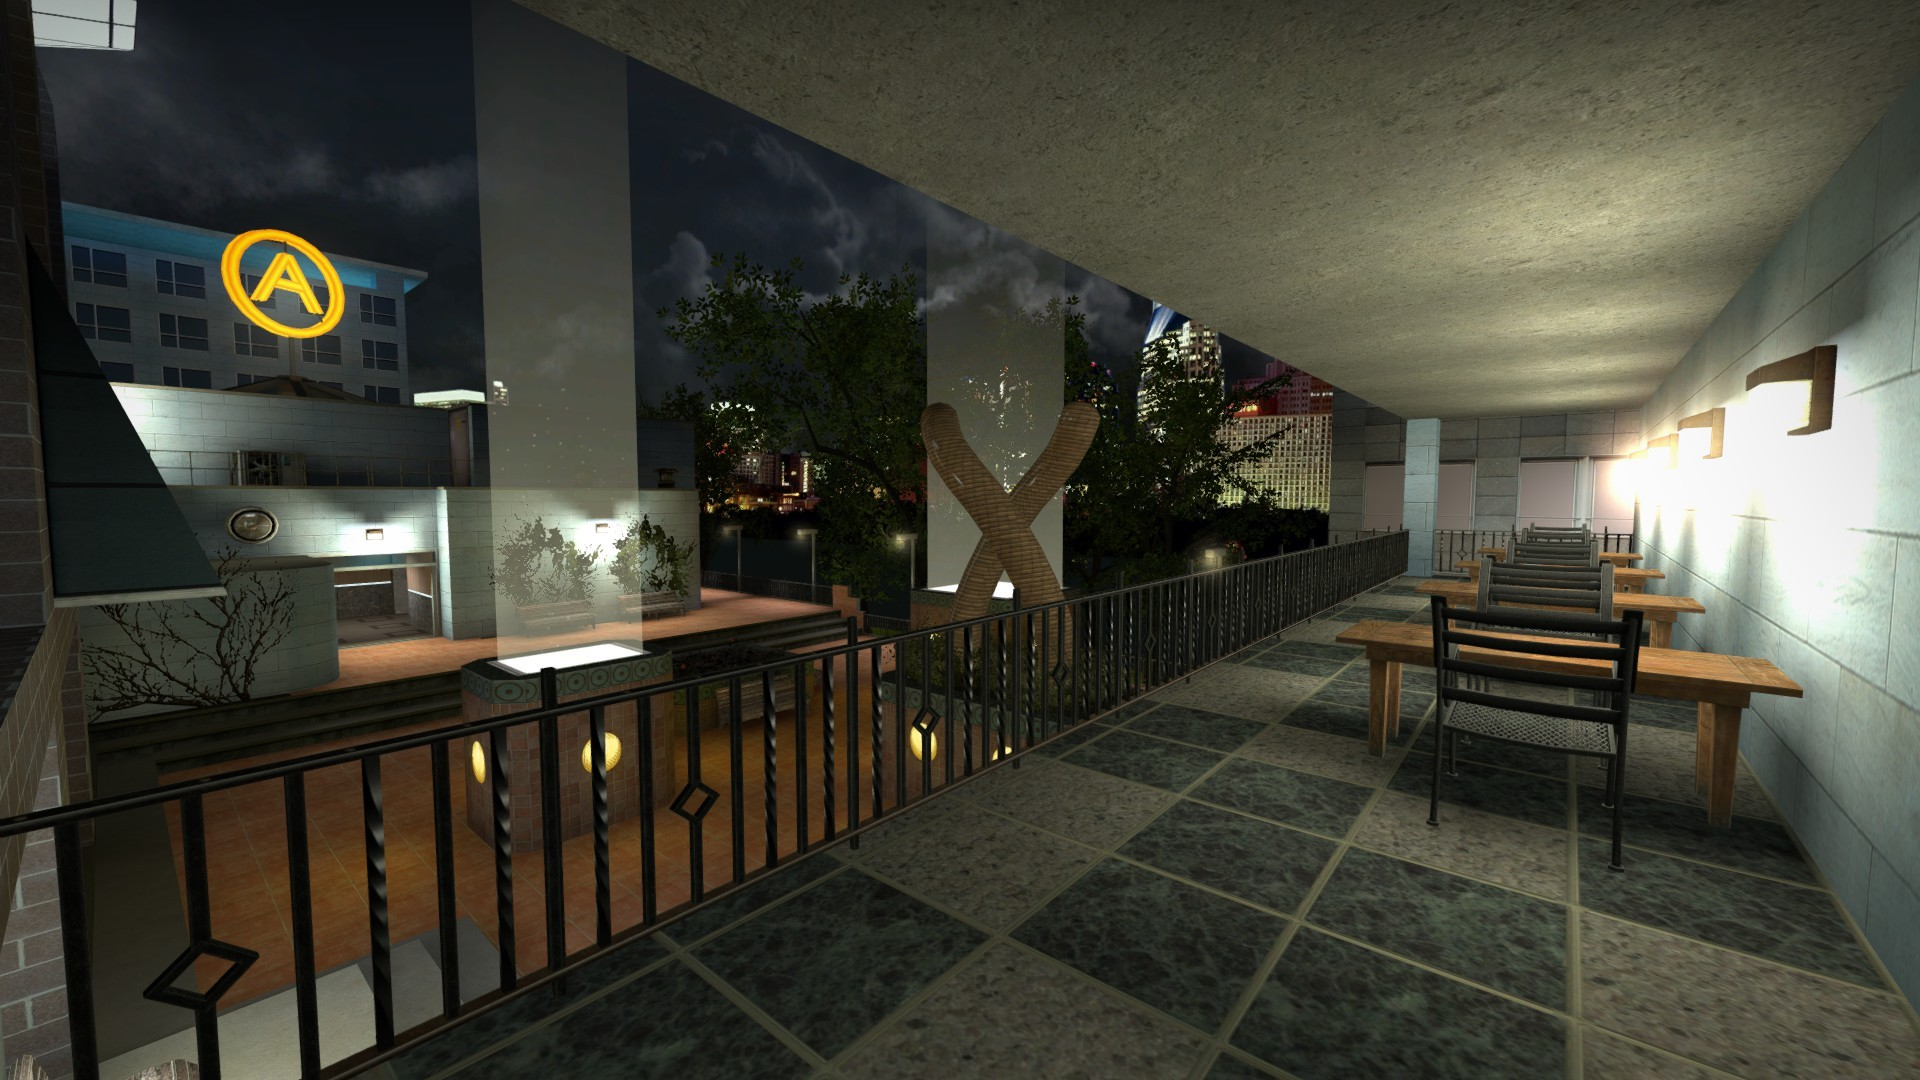 Counter-Strike: Global Offensive Map - de_nightfever_beta screenshot 6